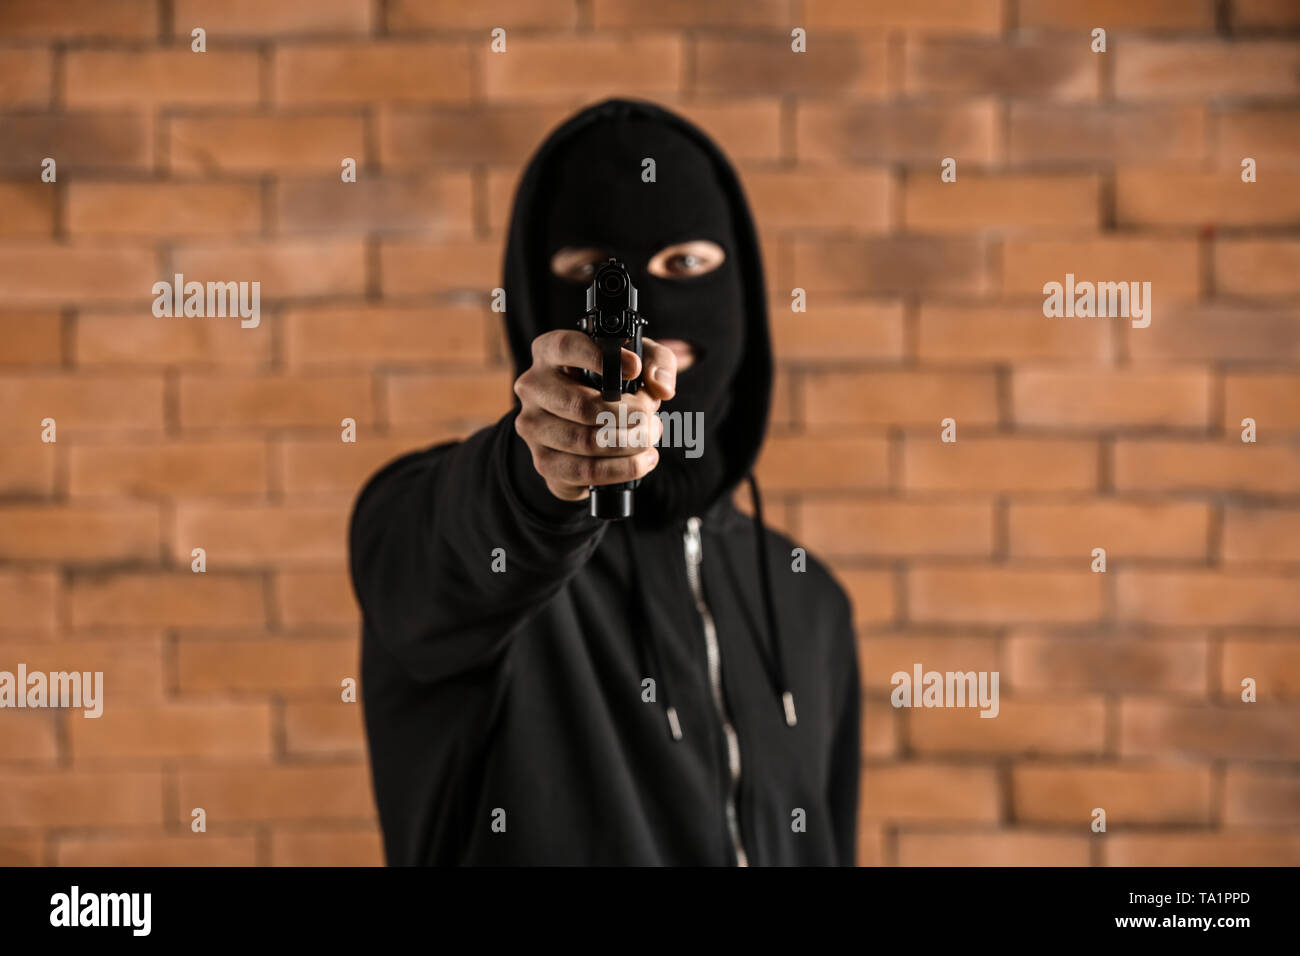 Male criminal pointing a gun at viewer against brick background - Stock Image